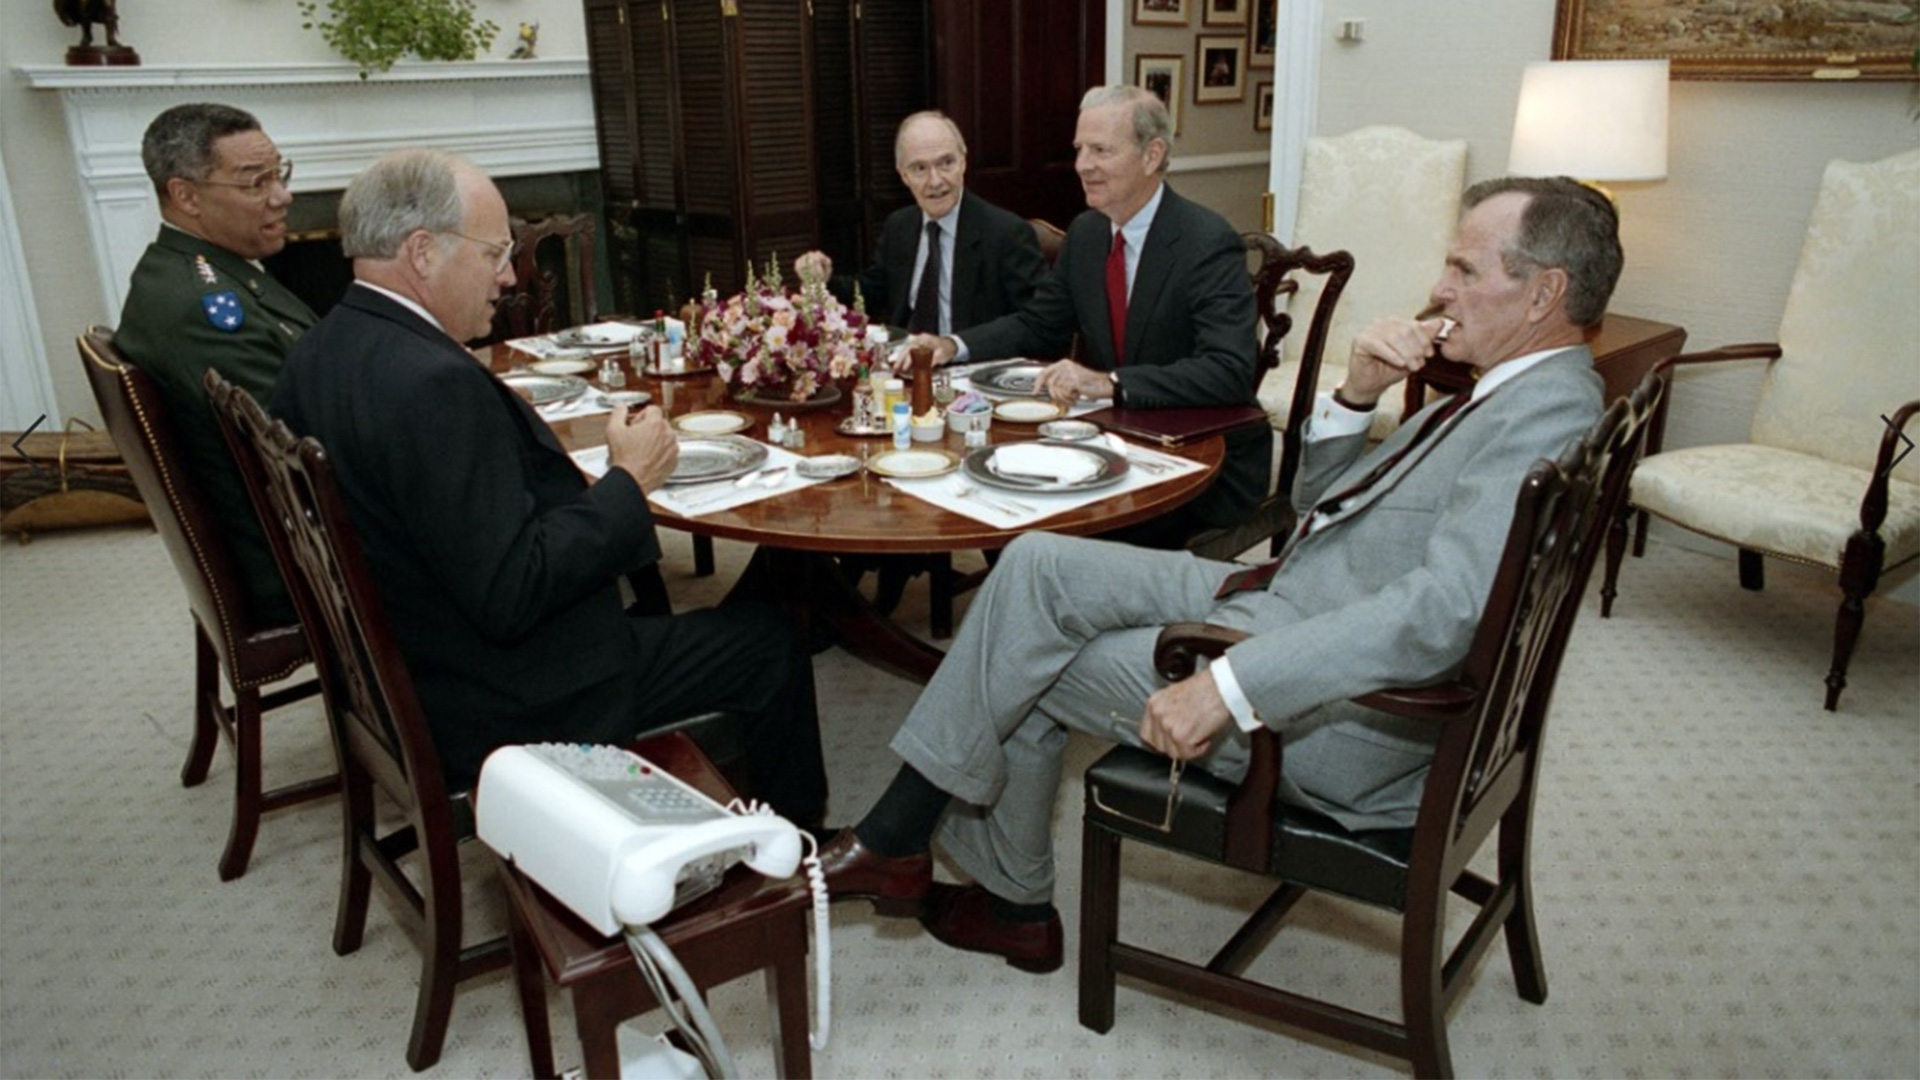 (From left) Colin Powell, Richard Cheney, Brent Scowcroft, and James Baker meet with President Bush, June 26, 1992